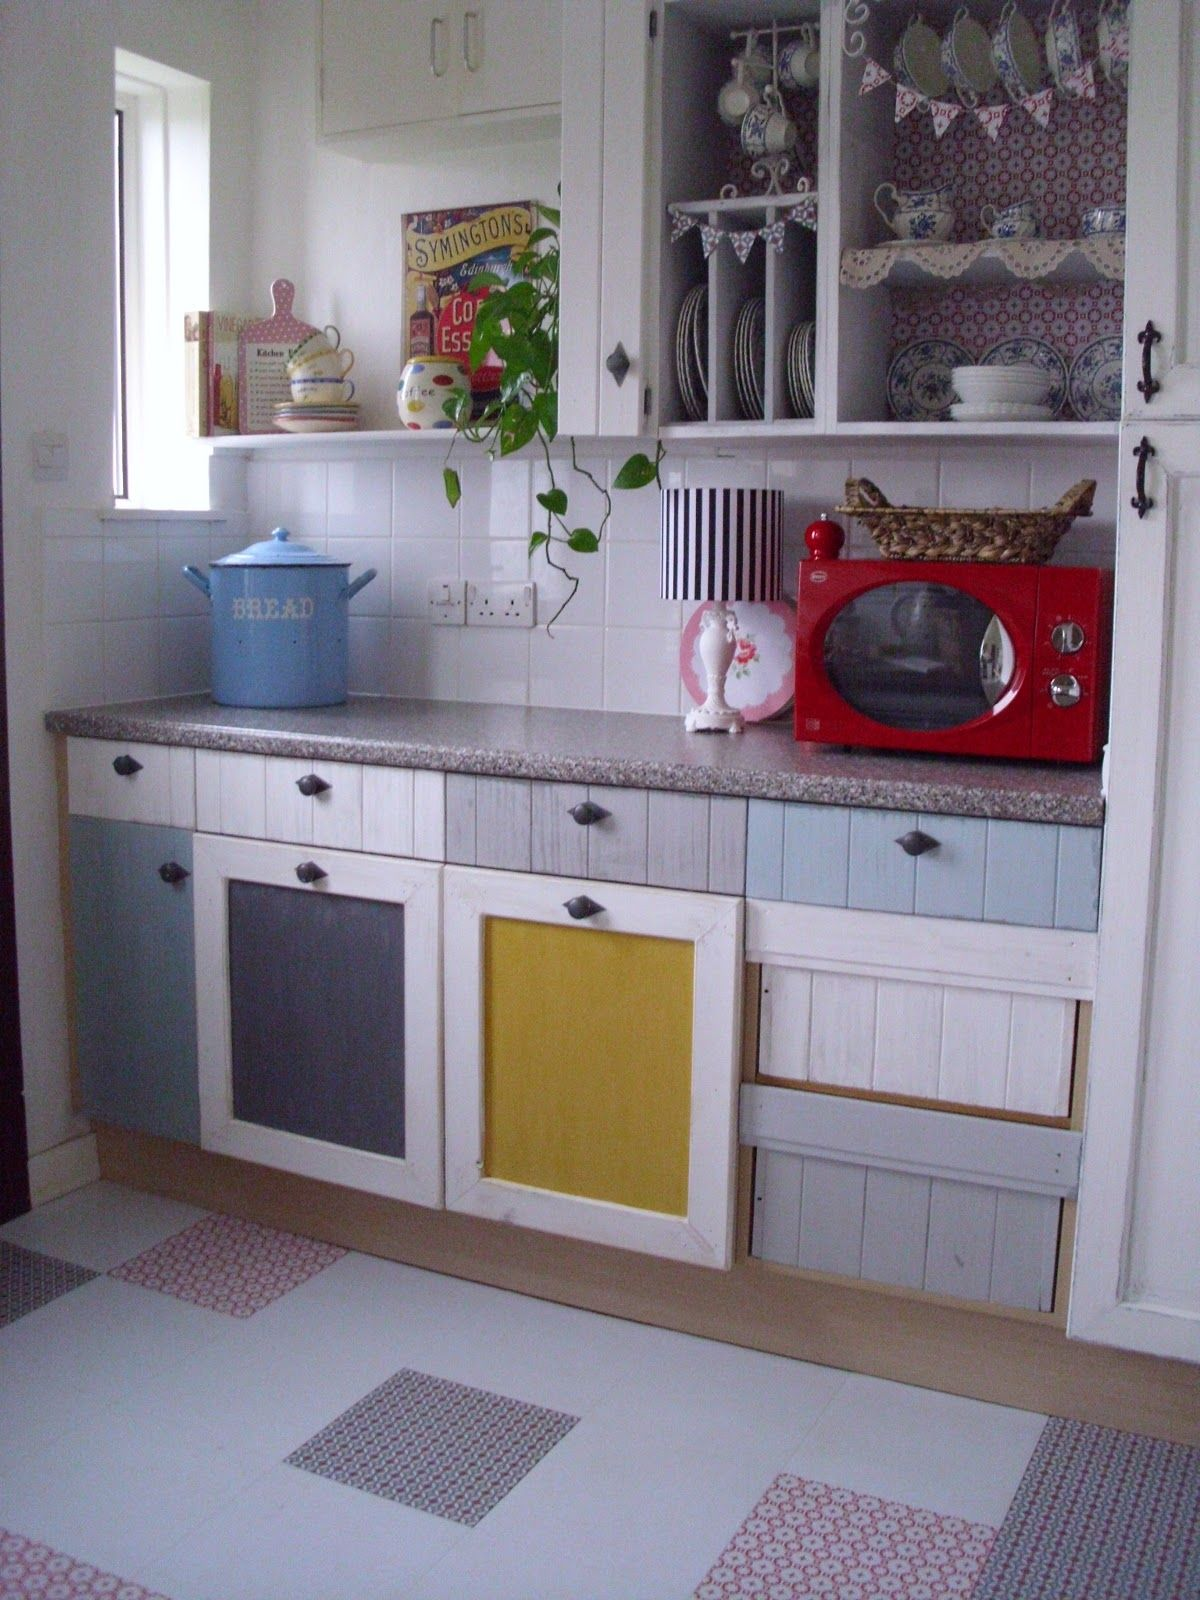 Upcycled Kitchen Cabinet Ideas Upcycled Kitchen Cabinets Old Kitchen Cabinets Kitchen Design